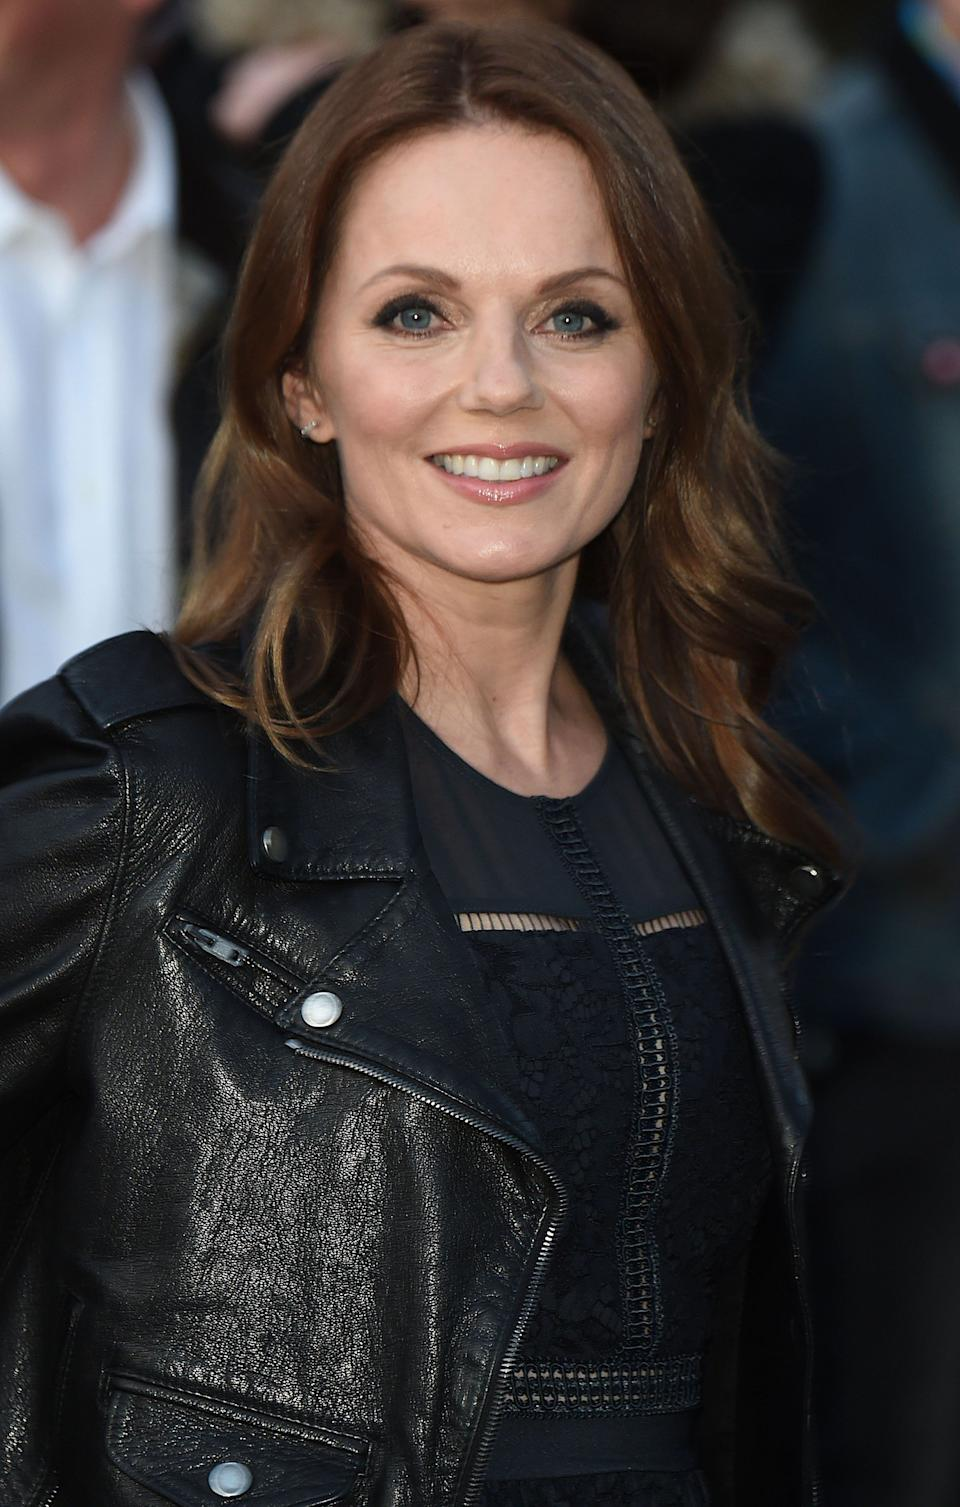 """Photo by: KGC-03/STAR MAX/IPx 2016 4/4/16 Geri Halliwell Horner at the opening night gala for """"Exhibitionism: The Rolling Stones Exhibition"""" at Saatchi Gallery. (London, England, UK)"""